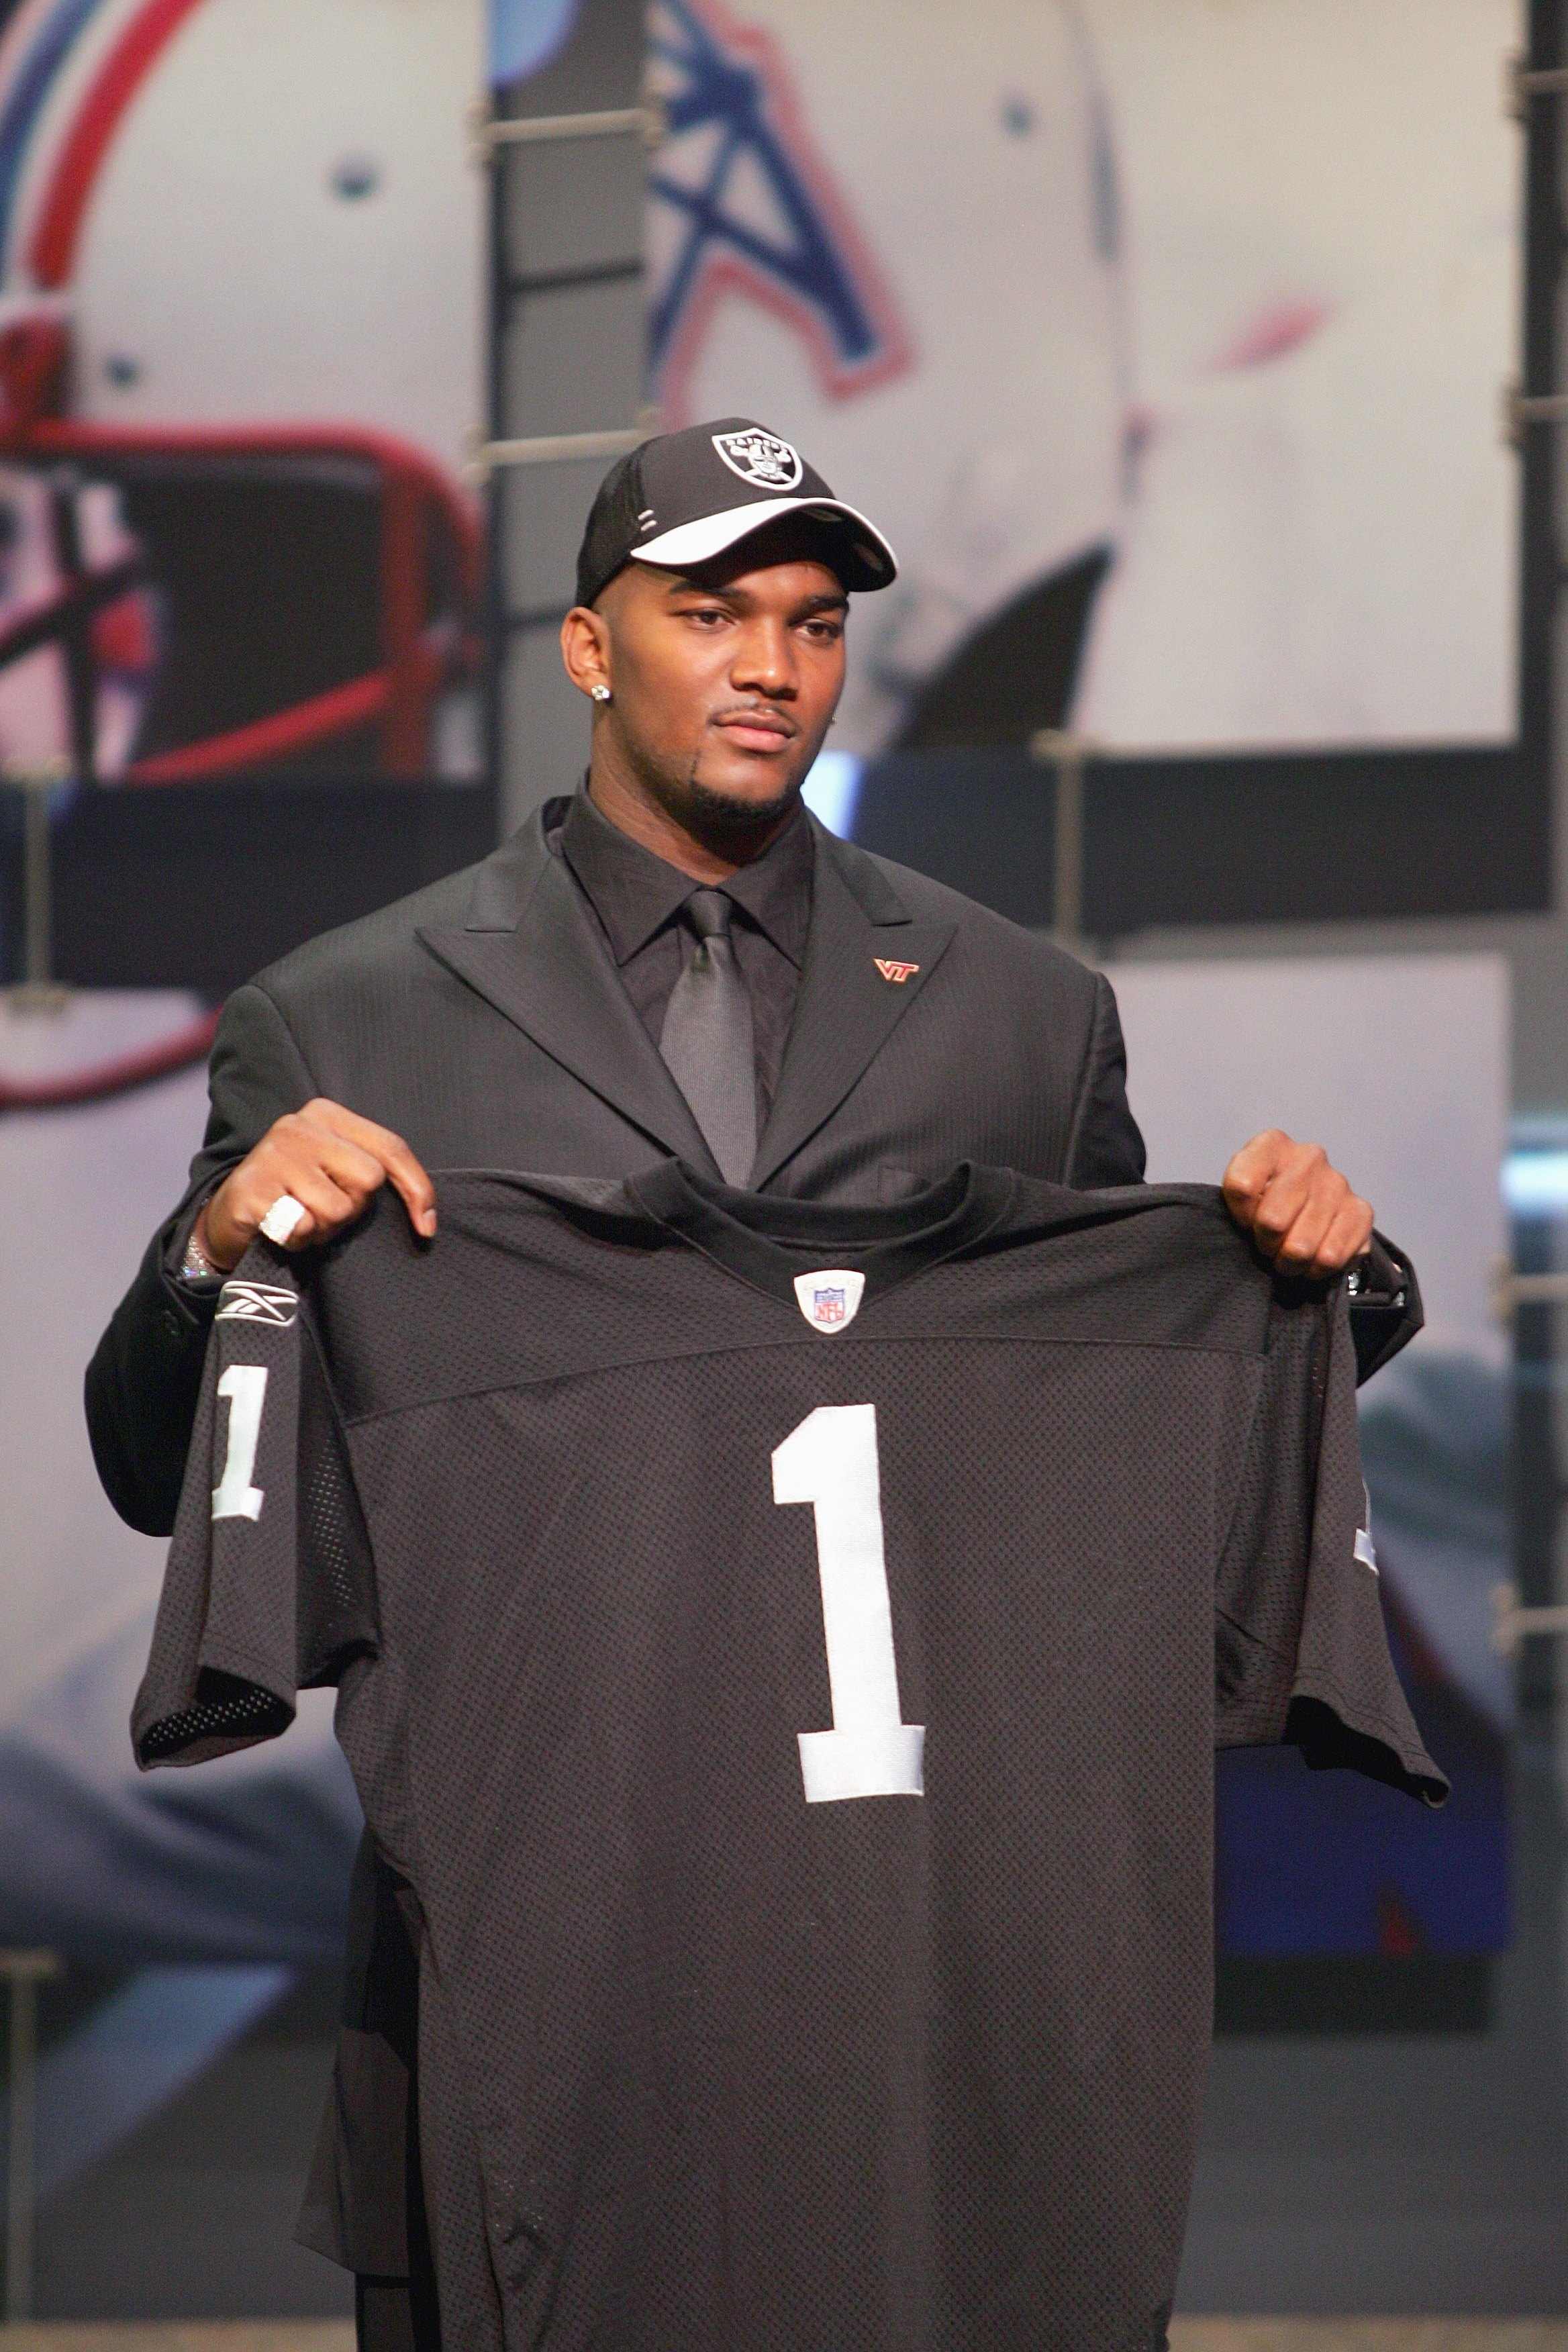 NEW YORK - APRIL 28:  Quarterback JaMarcus Russell of LSU poses for a photo after being drafted by the Oakland Raiders during the 2007 NFL Draft on April 28, 2007 at Radio City Music Hall in New York, New York. (Photo by Chris McGrath/Getty Images)